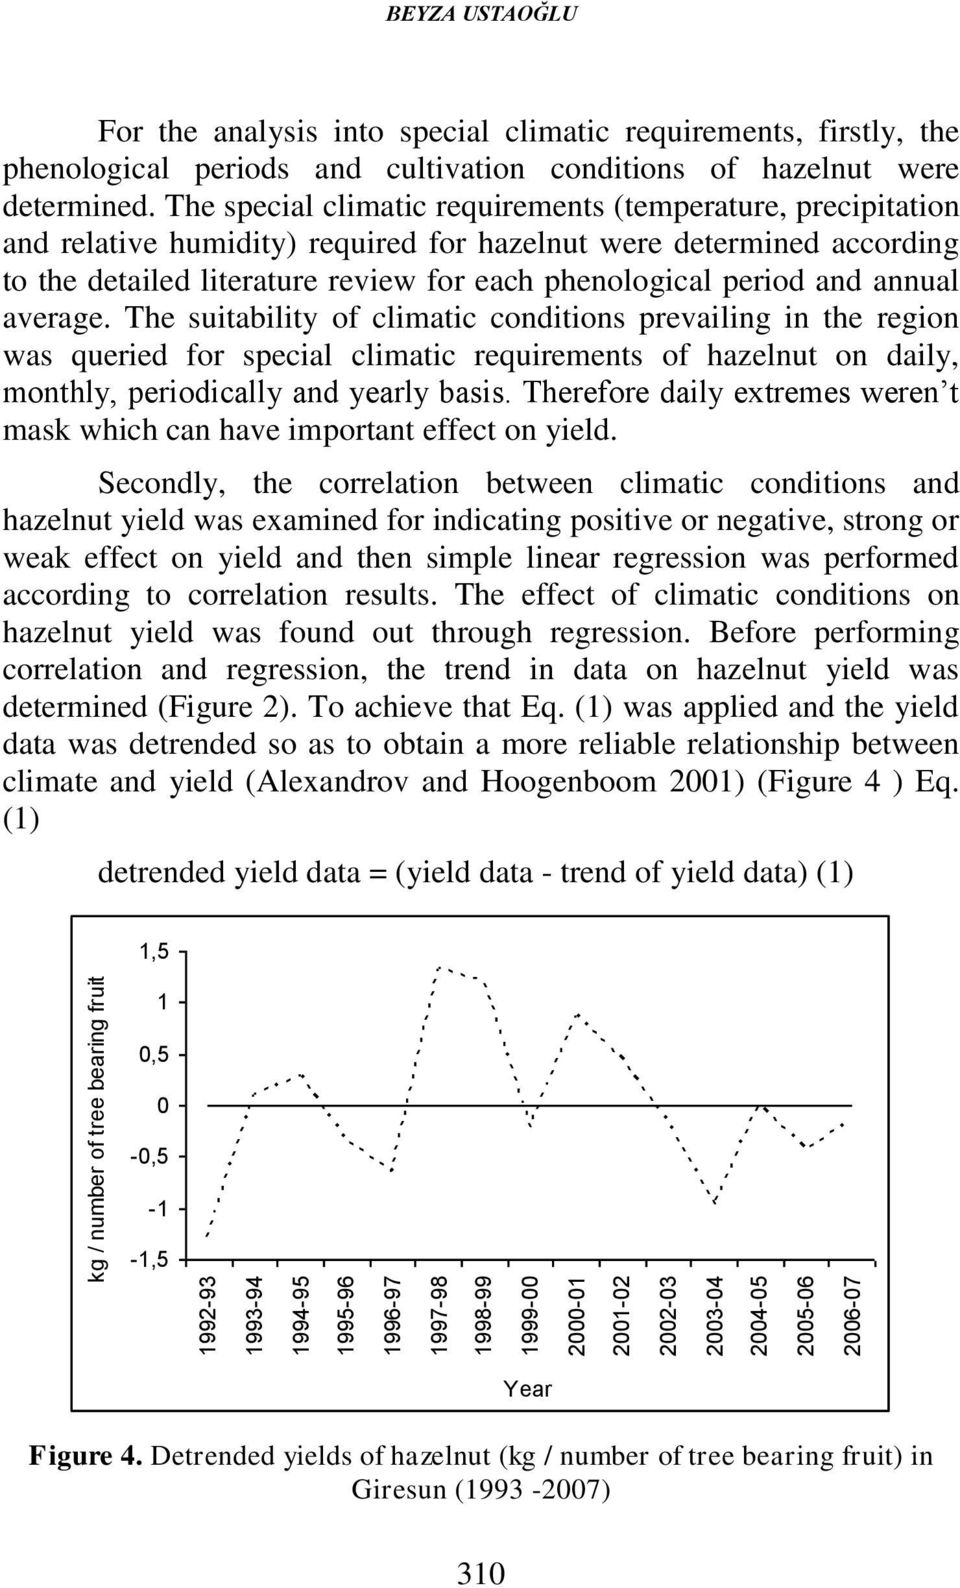 The special climatic requirements (temperature, precipitation and relative humidity) required for hazelnut were determined according to the detailed literature review for each phenological period and